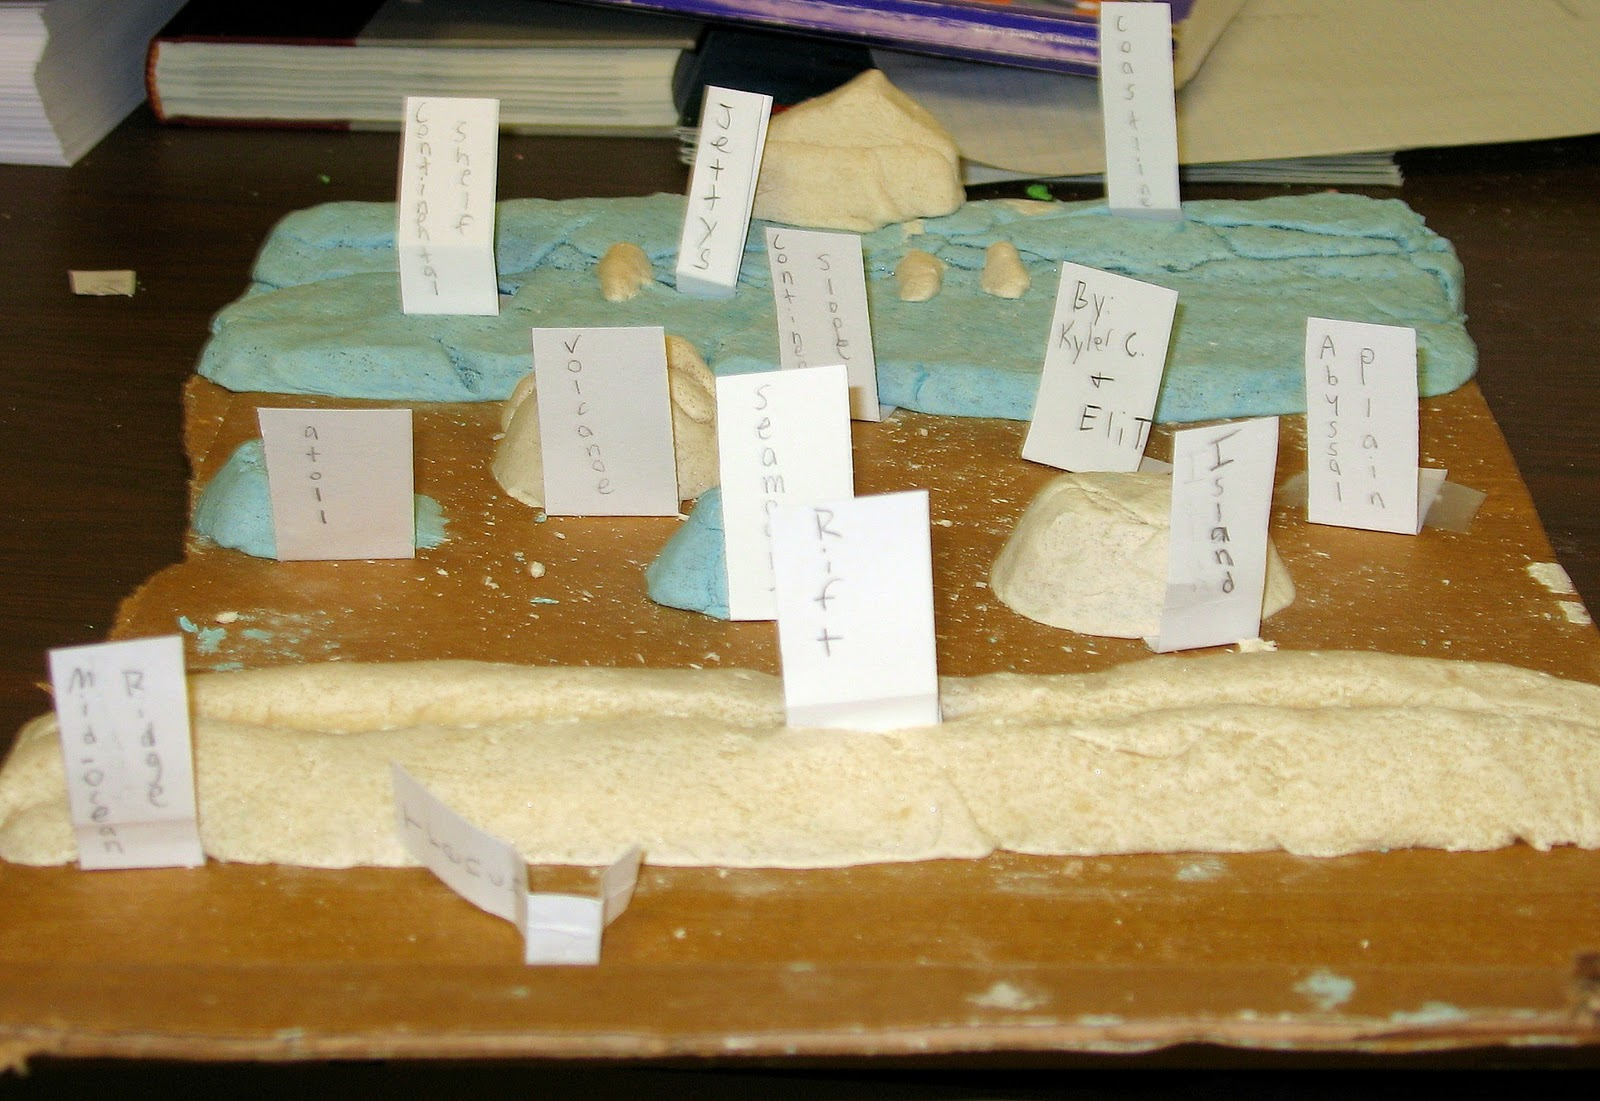 Ocean Floor Model Project Ideas http://hawaiidermatology.com/ocean/ocean-floor-model-project.htm